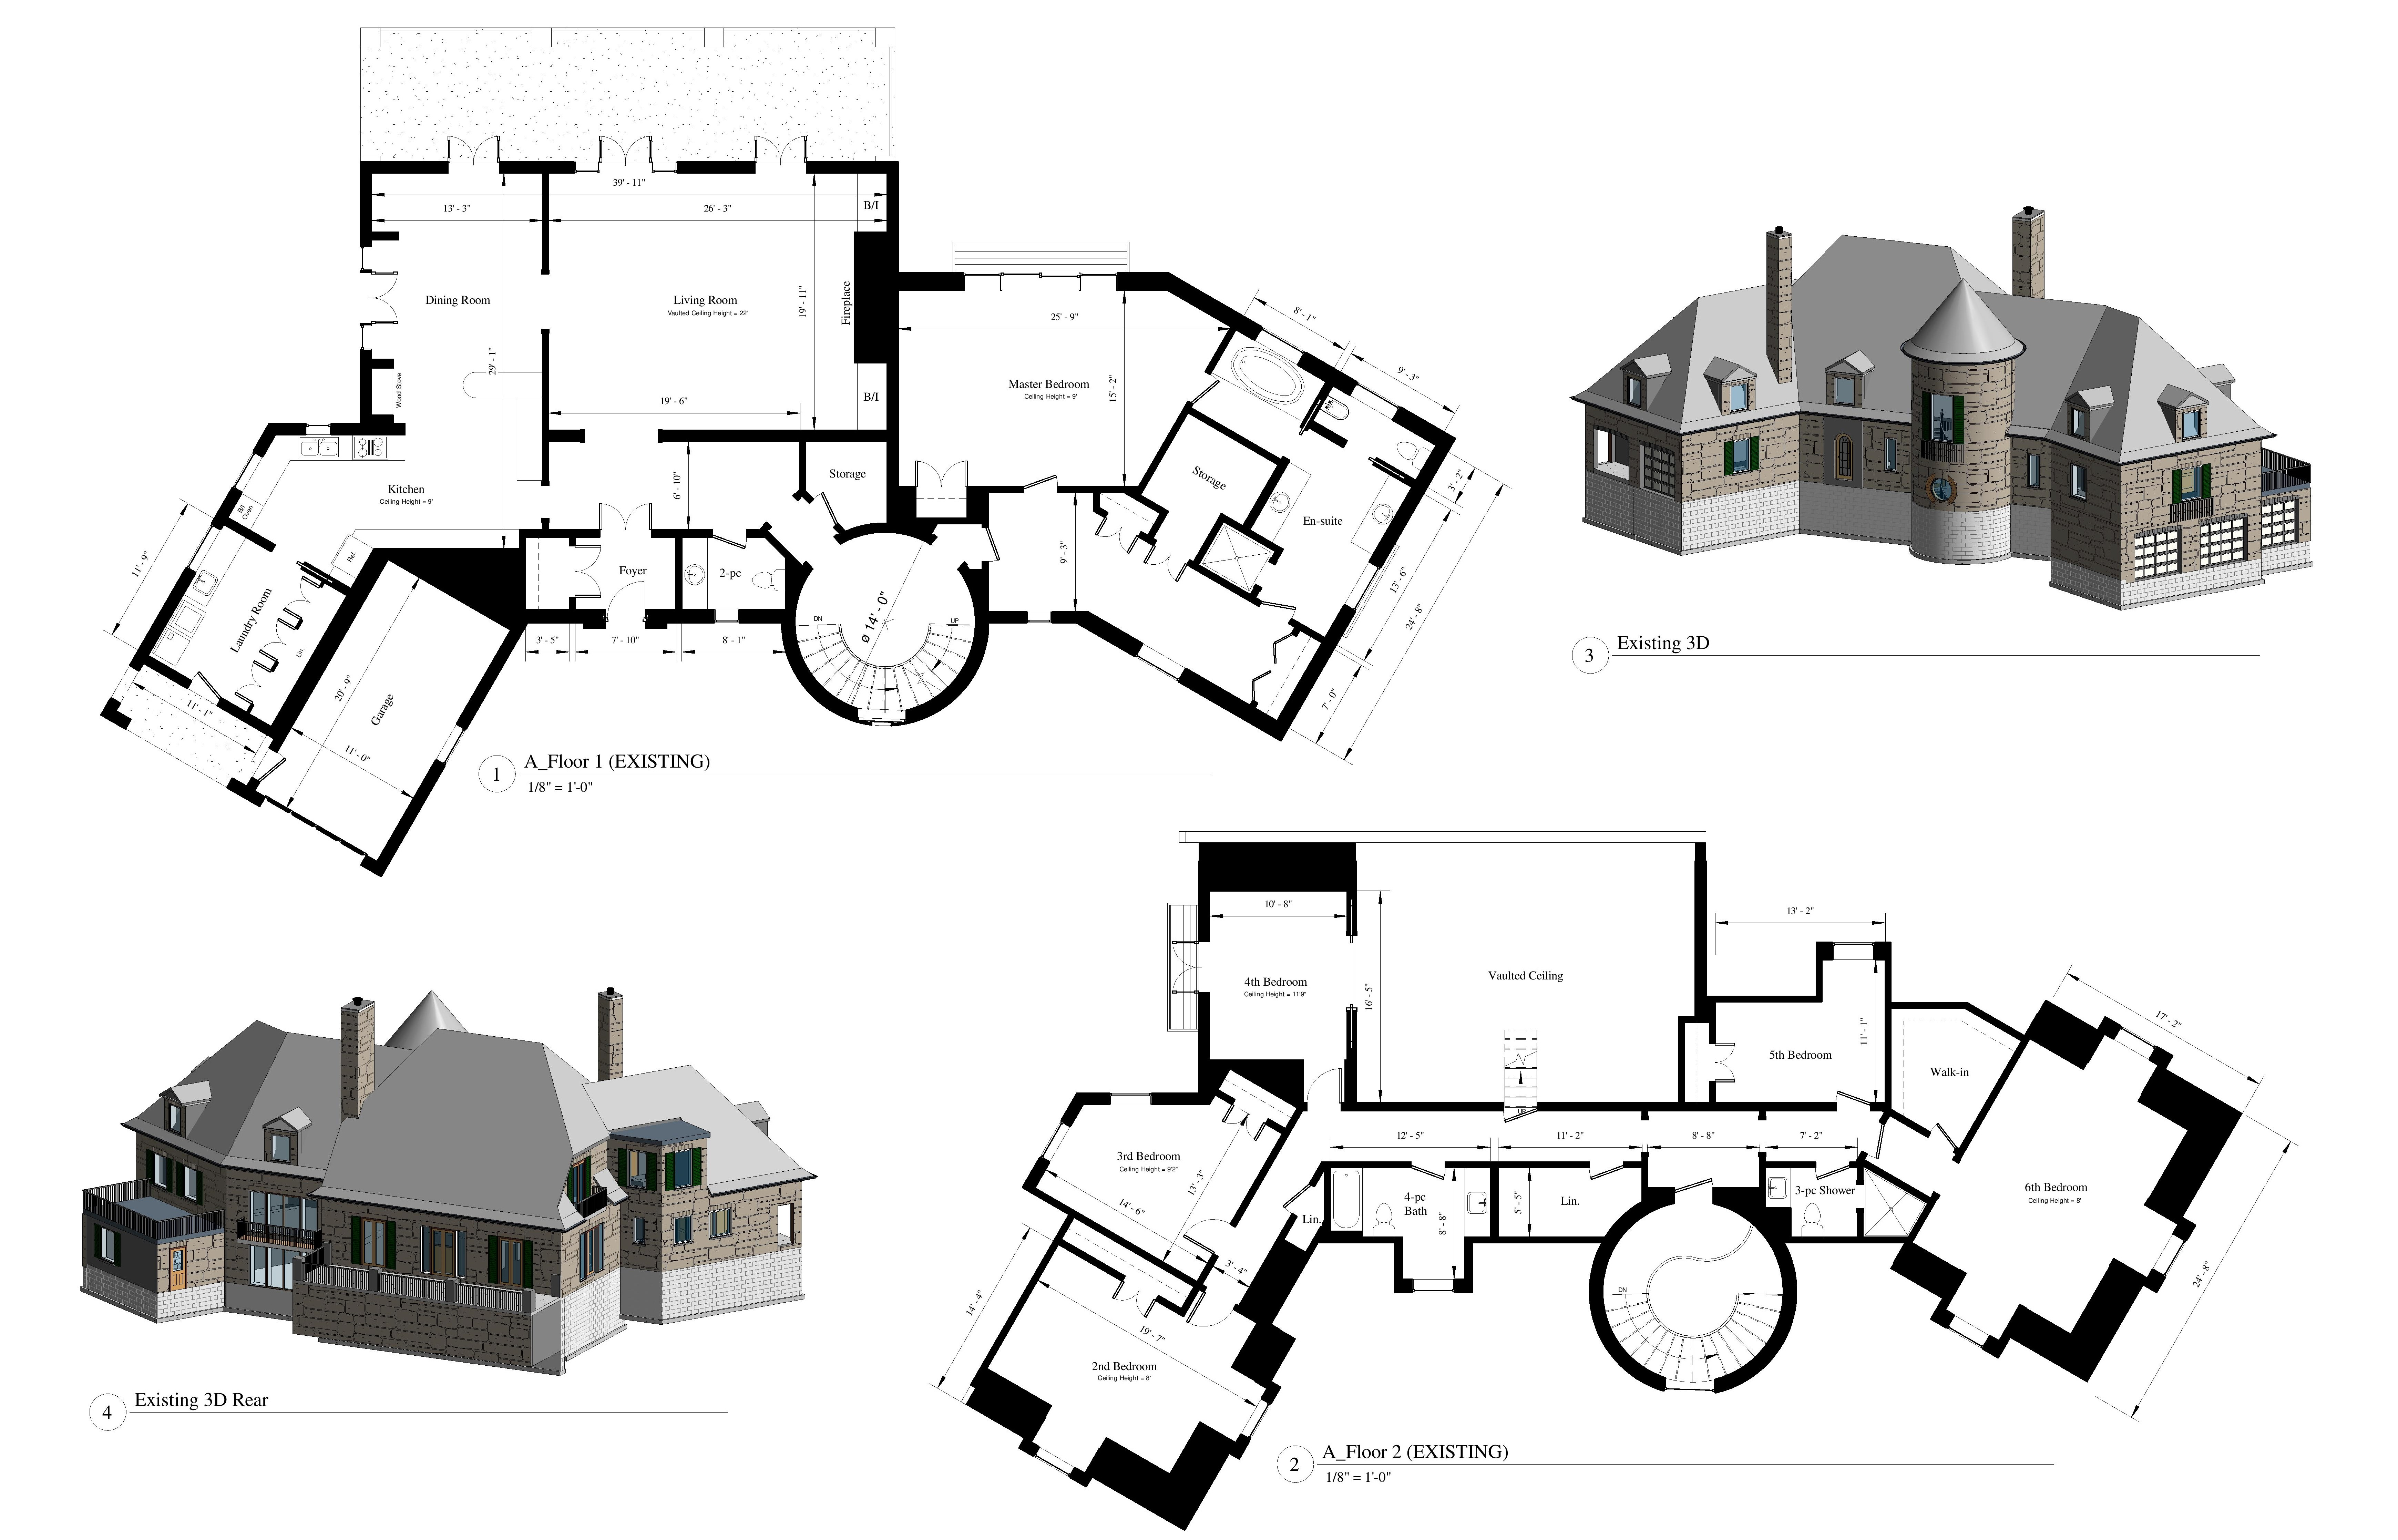 AutoCad drawings of an existing floor plan, two 3D model elevations of the front and rear view of a residential home with supporting data charts.